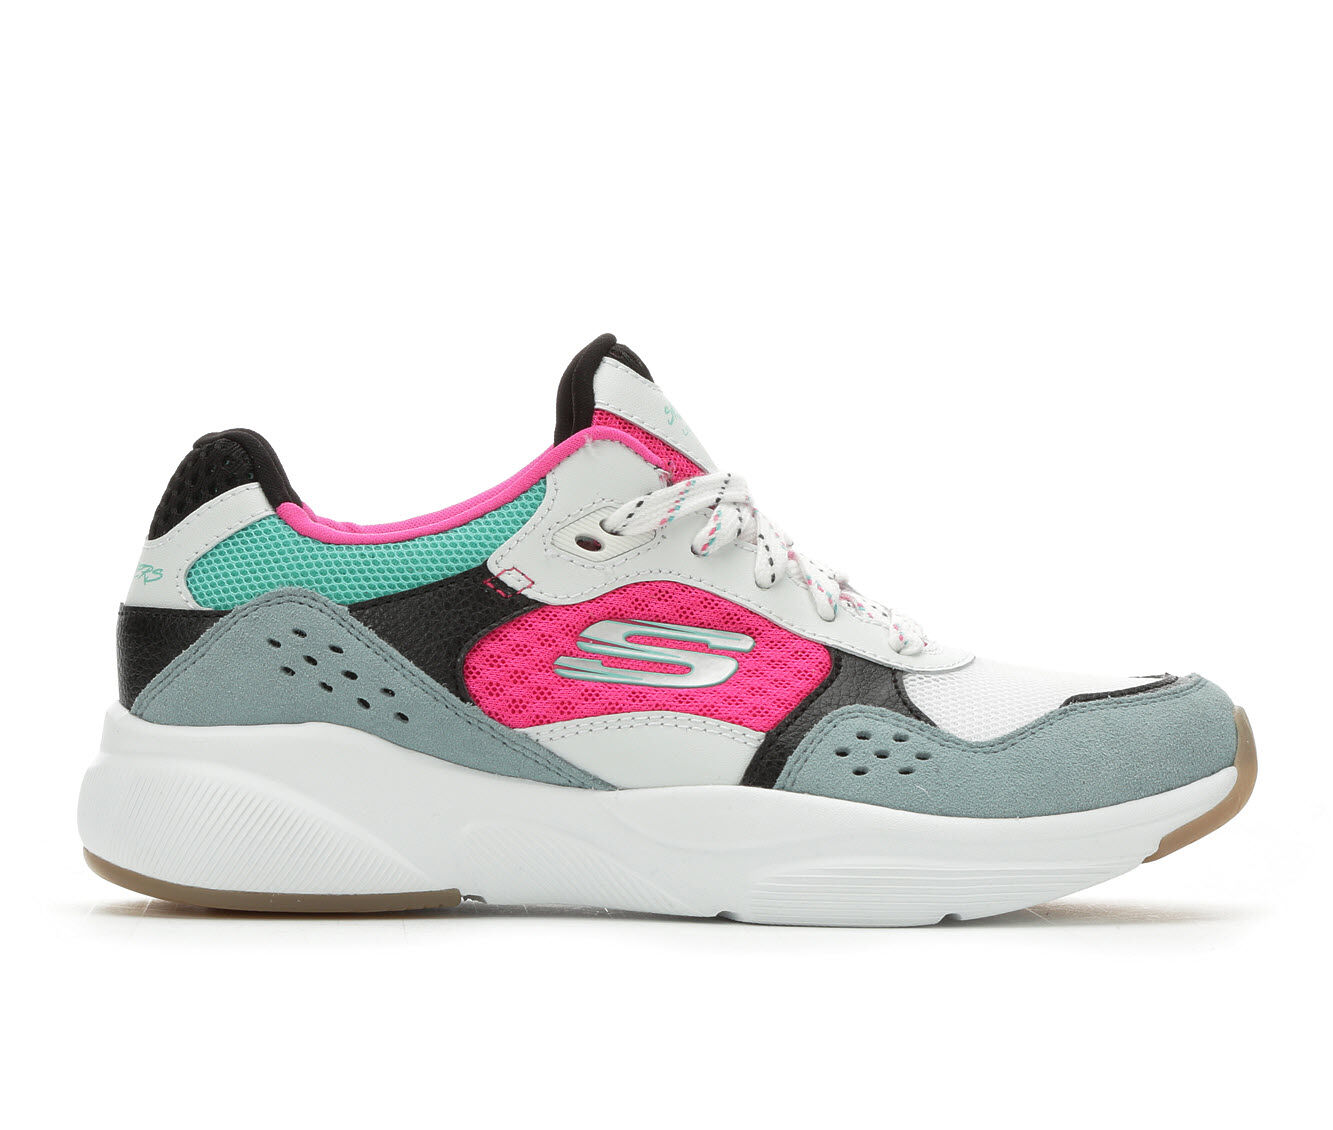 a huge range of Women's Skechers Charted 13019 Sneakers White/Pink/Teal